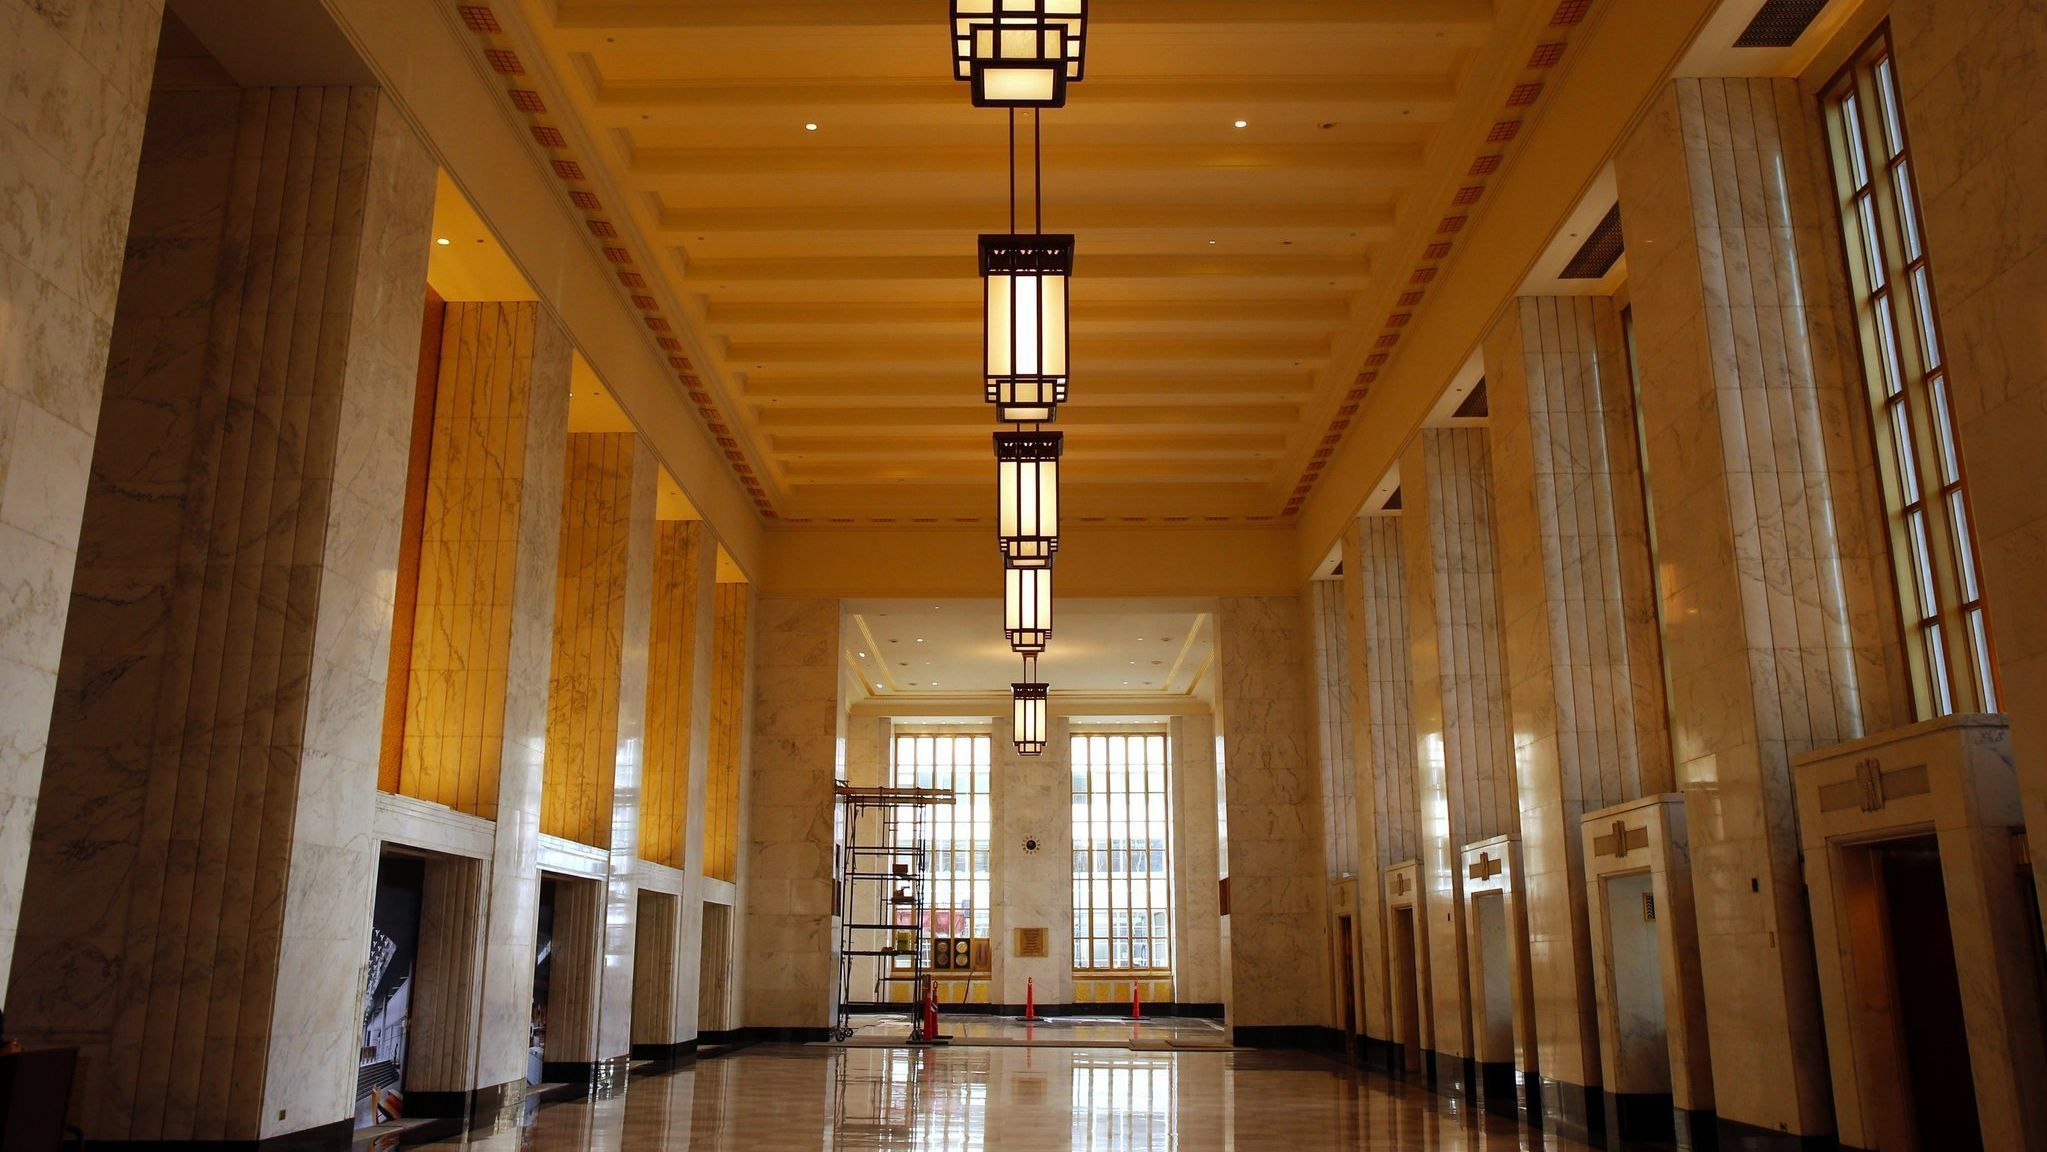 Regional planning agency to become third office tenant at redeveloped Old Post Office